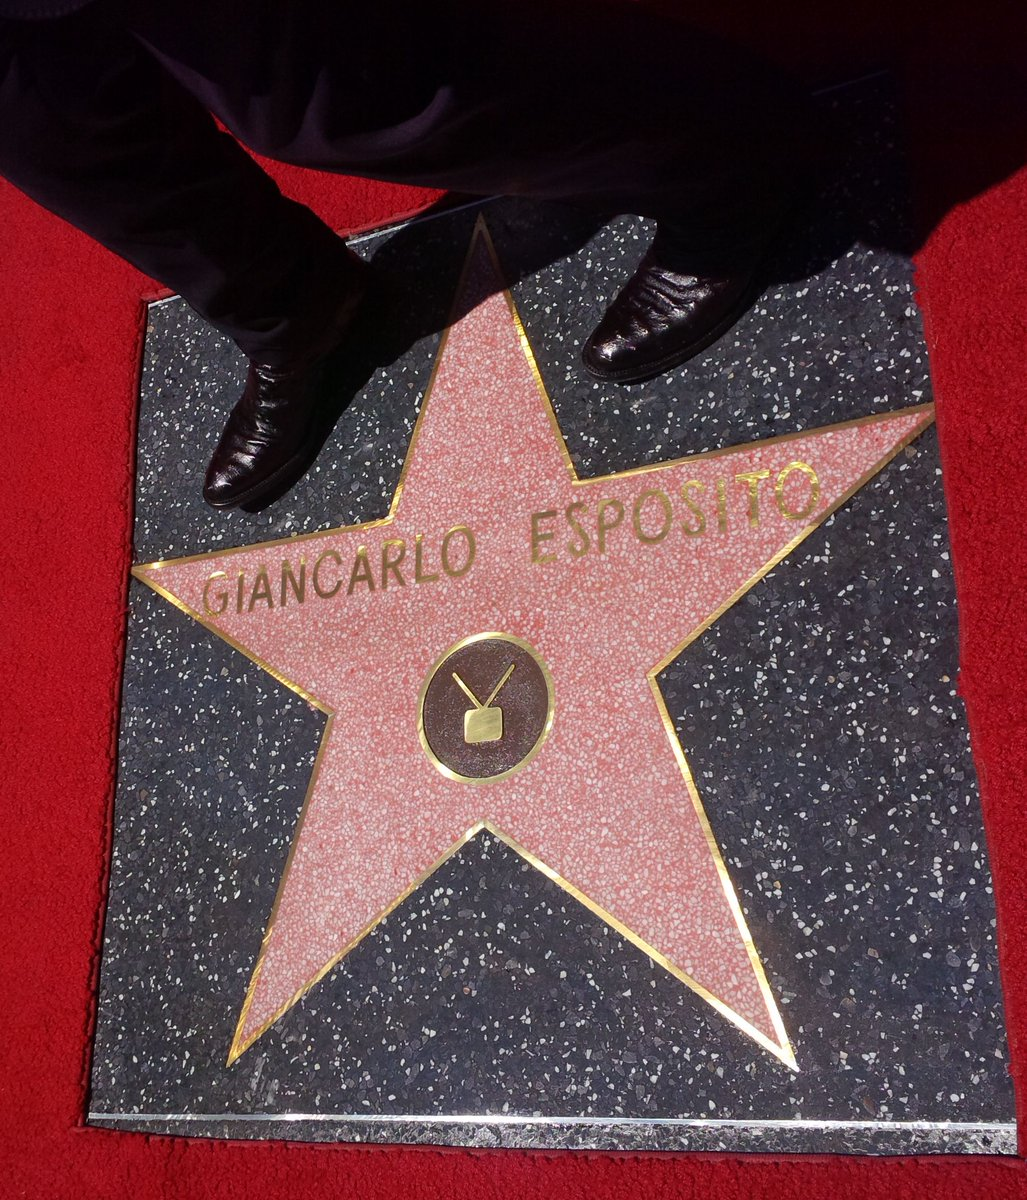 Hey @quiethandfilms! Look where we all were 1 year ago today! #HollywoodWalkofFame #Star https://t.co/6XLZXdPwgg http://t.co/zrFKCk6Y3G